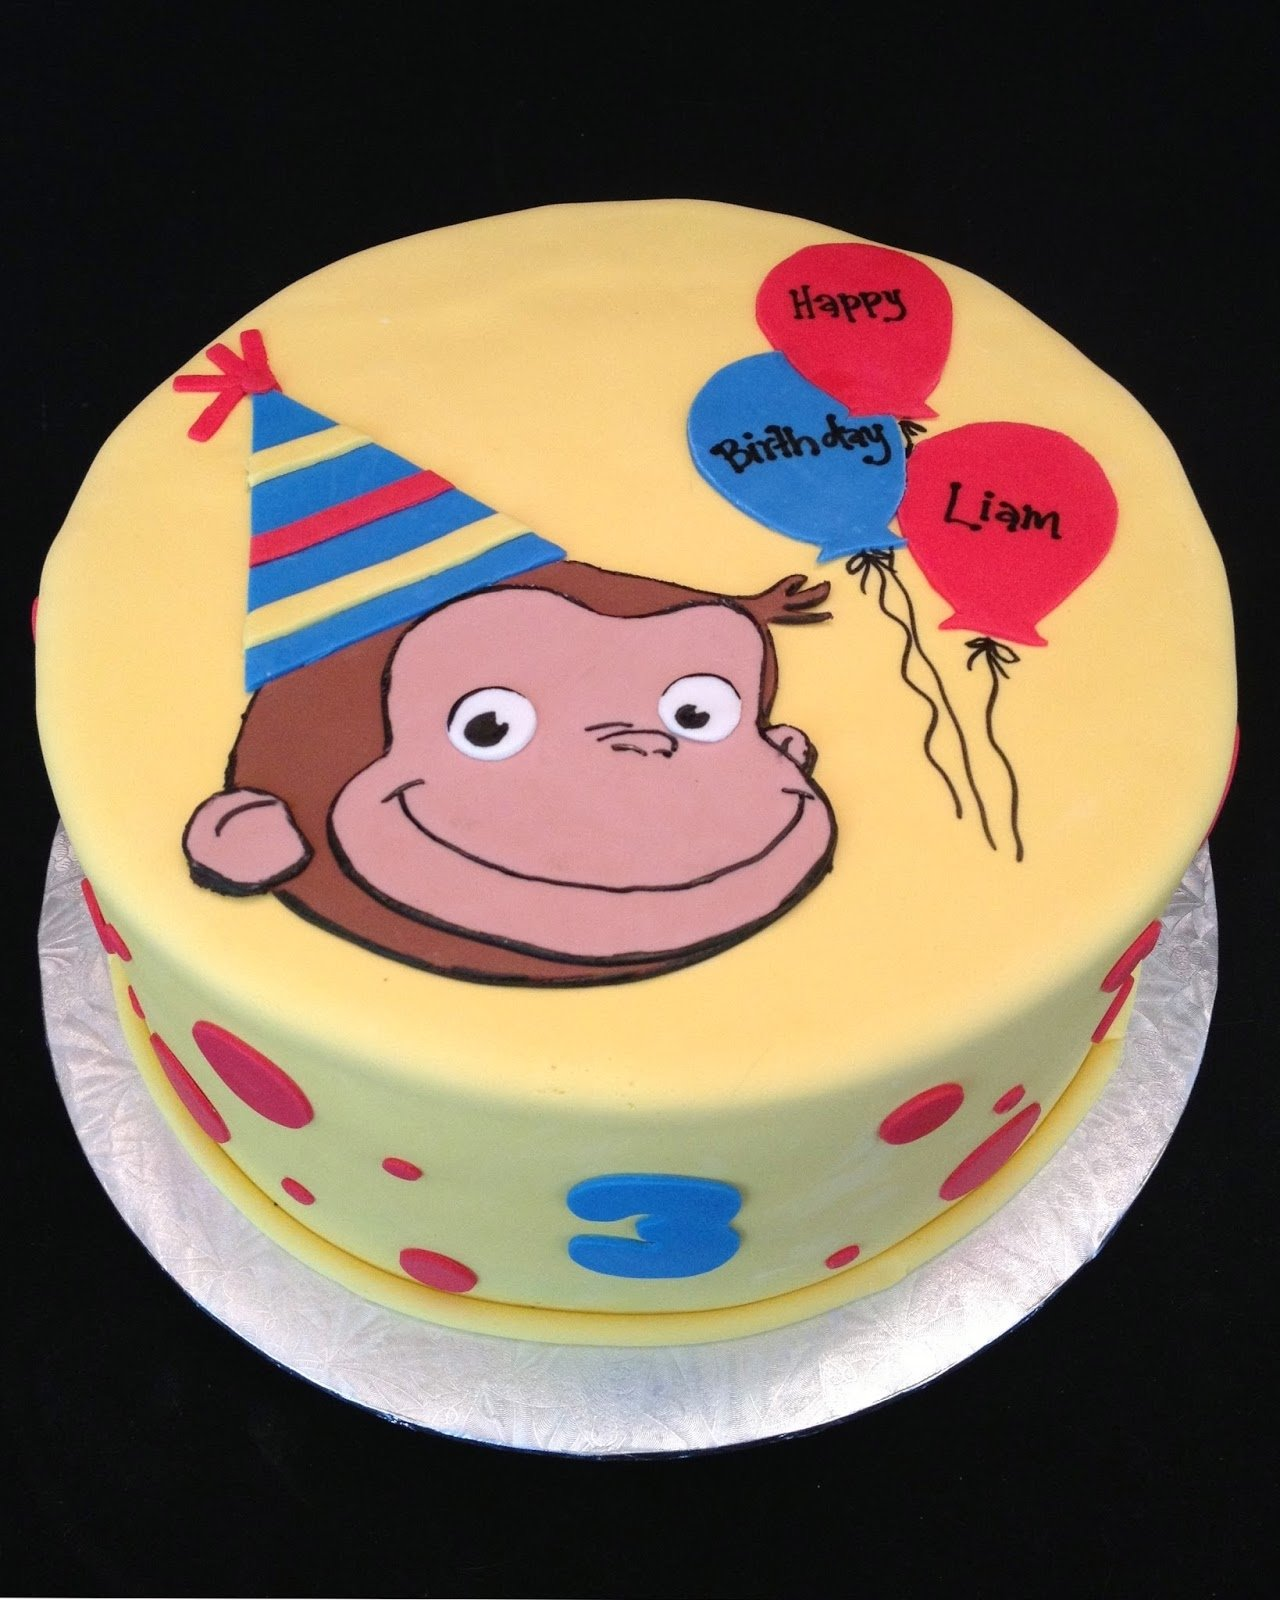 10 Famous Curious George Birthday Cake Ideas curious george birthday cake 2021